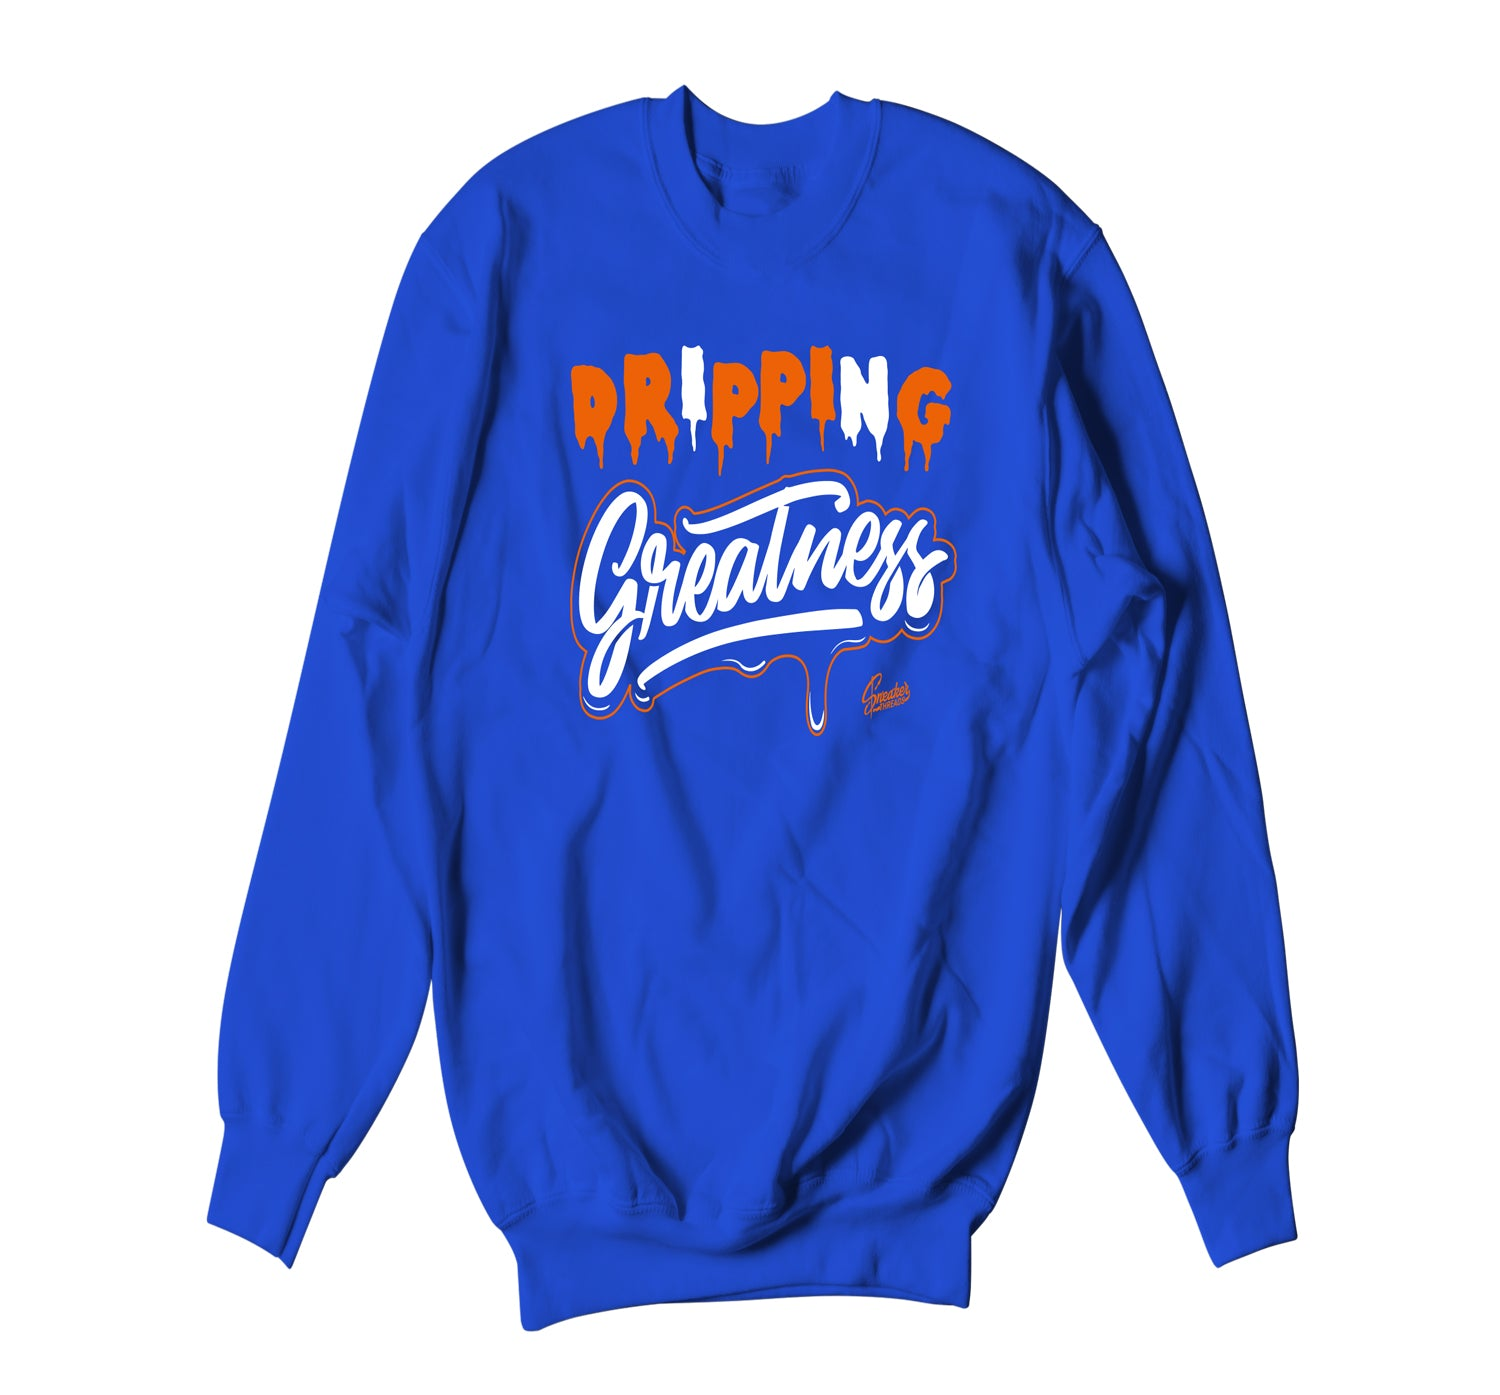 Jordan 3 Knicks Sweater - Dripping Greatness - Blue